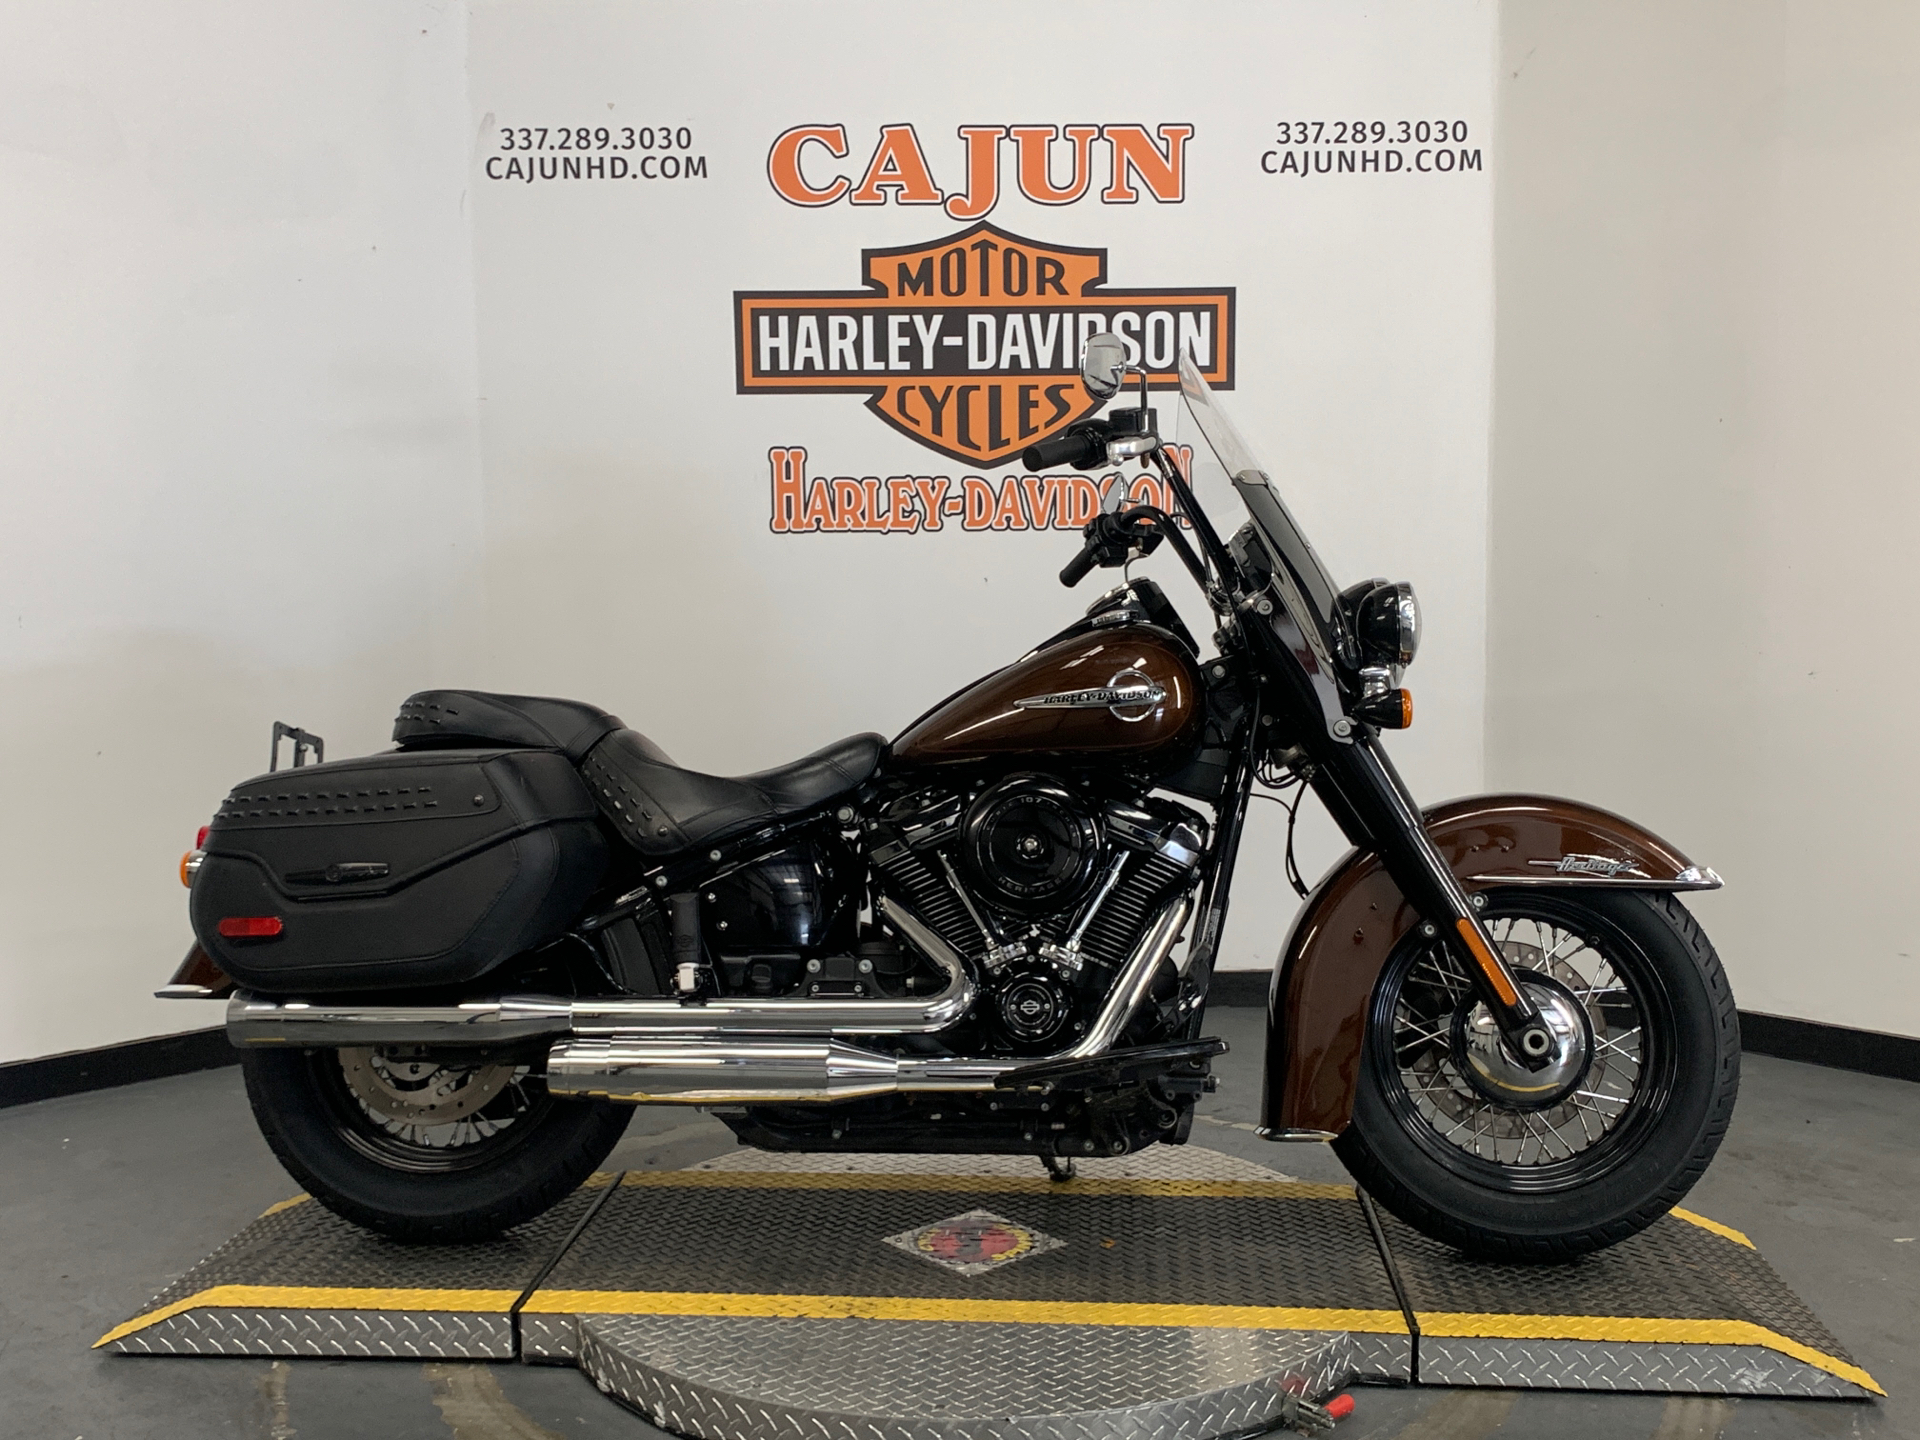 Harley-Davidson - Heritage Classic For Sale - Photo 1